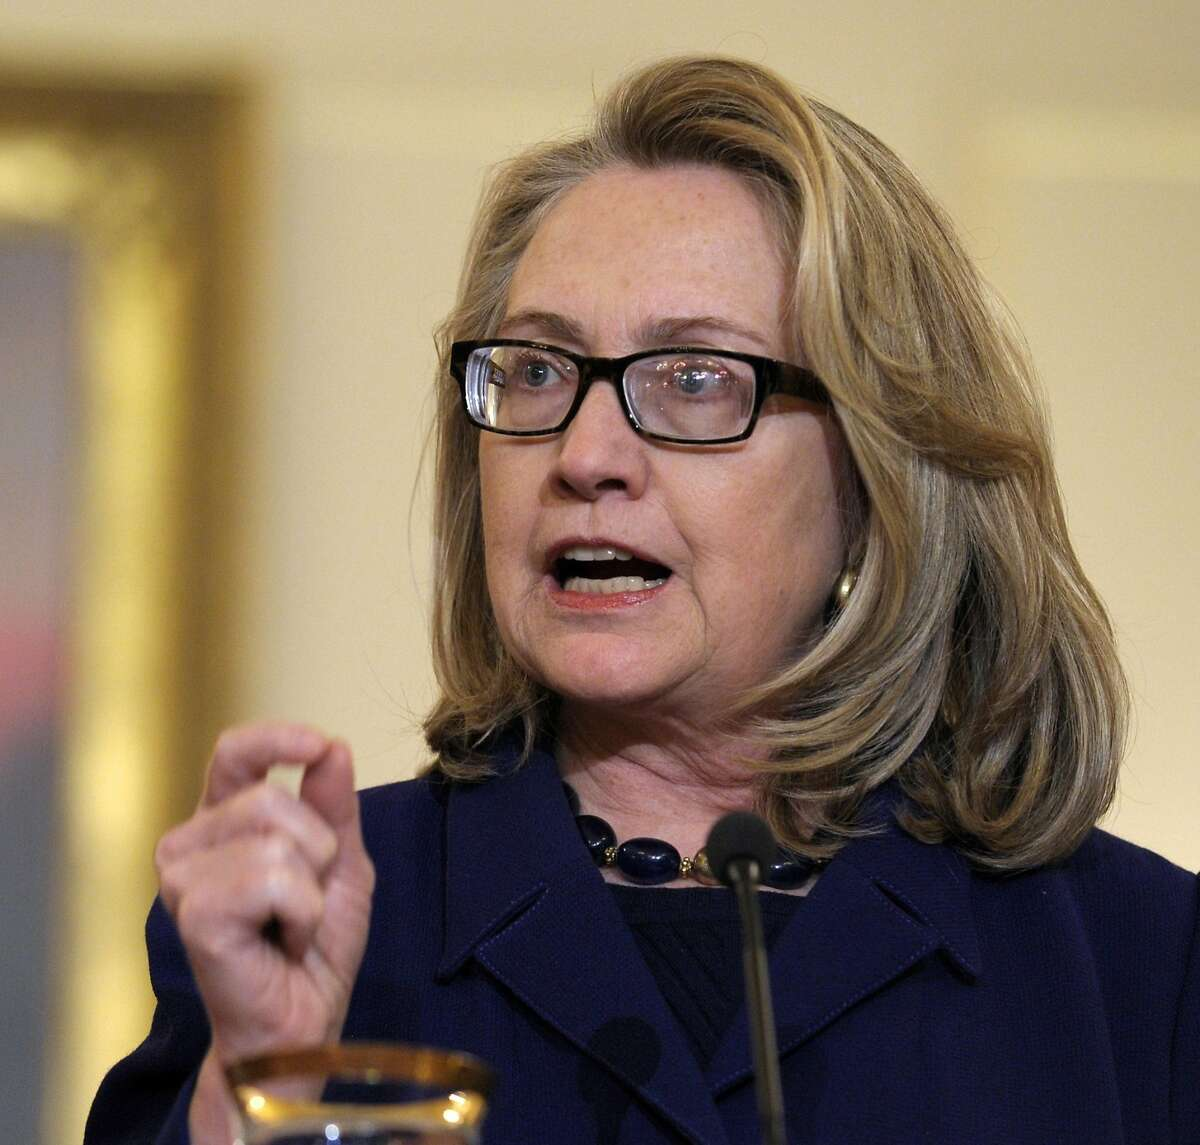 FILE - In this Jan. 18, 2013 file photo, then-Secretary of State Hillary Rodham Clinton speaks at the State Department in Washington. On Friday, the State Department posted 296 Benghazi-related emails from Hillary Clinton's private server. (AP Photo/Susan Walsh, File)